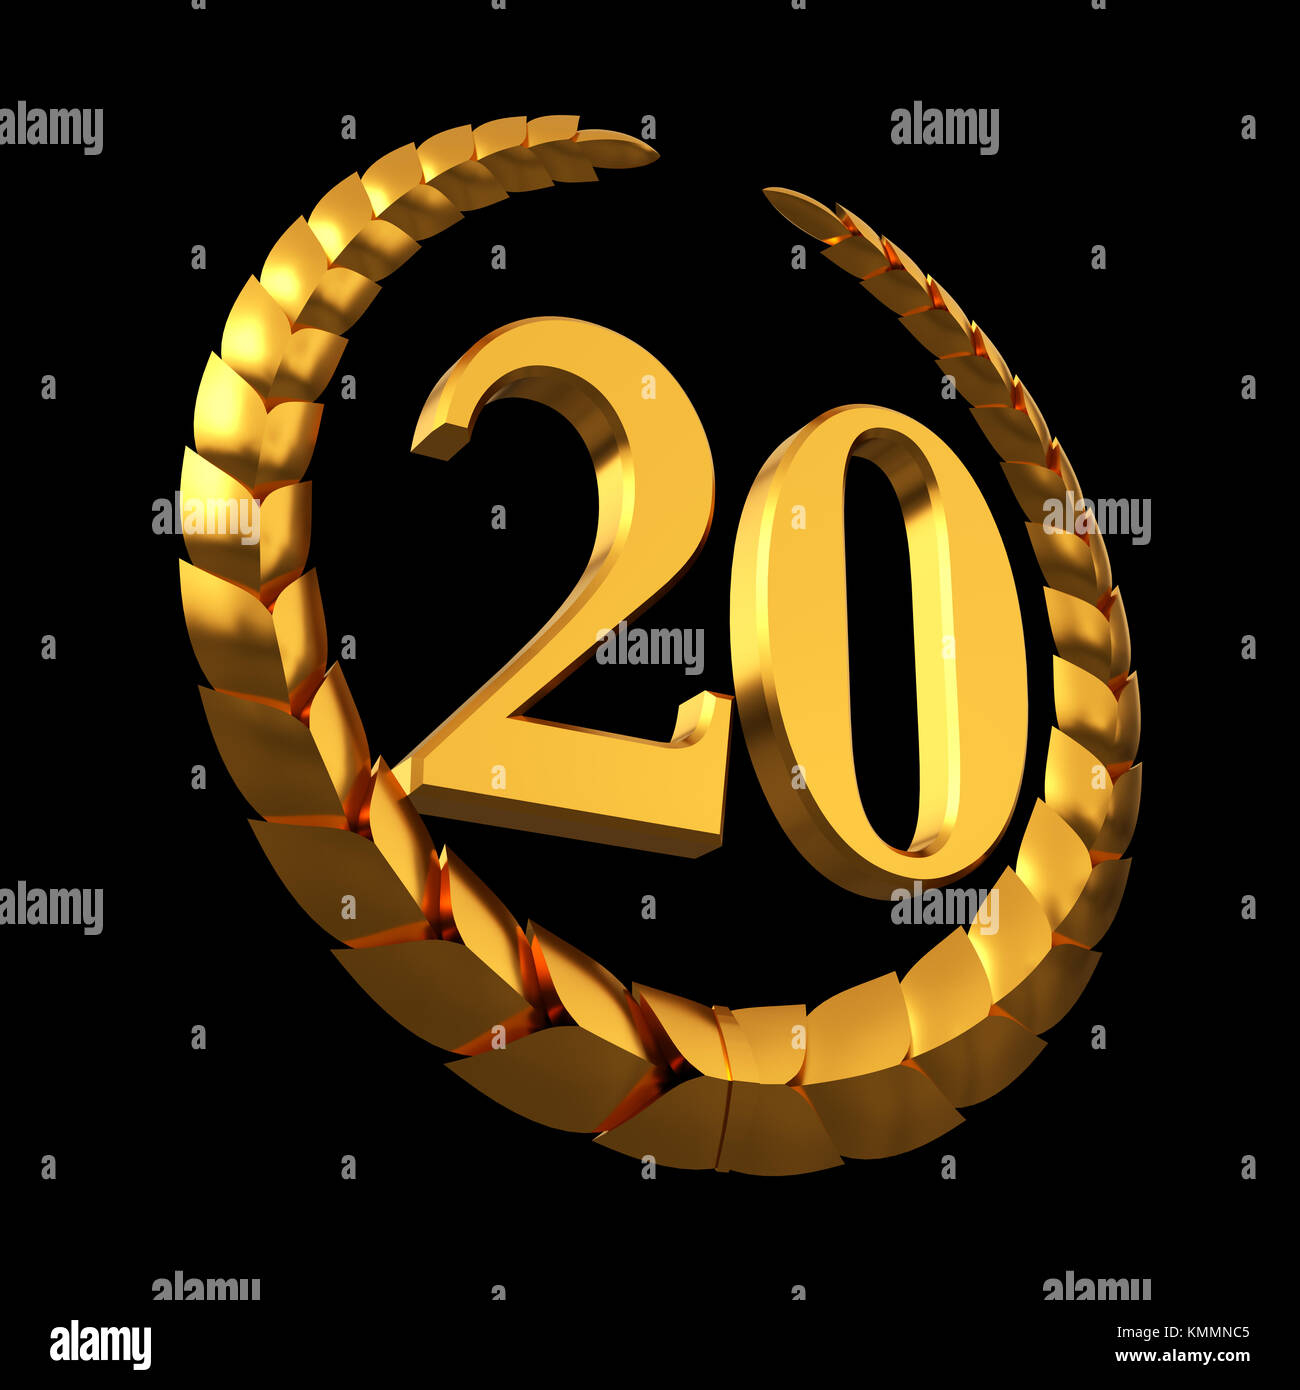 Anniversary Golden Laurel Wreath And Numeral 20 On Black Background - Stock Image